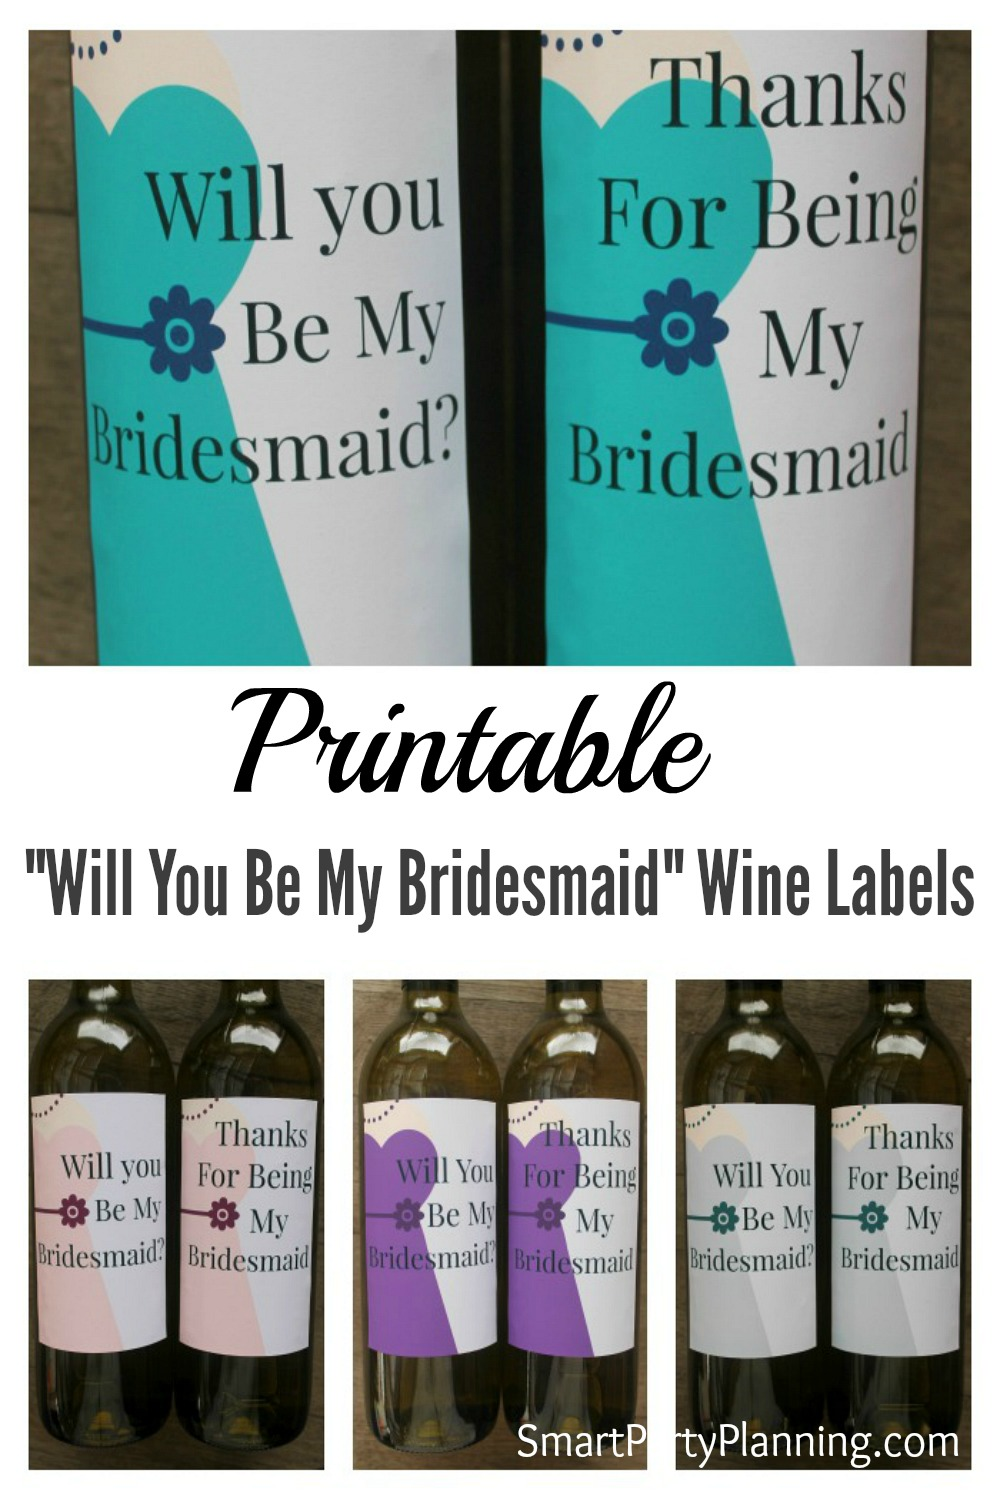 Will You Be My Bridesmaid Wine Labels Lektoninfo - Bridesmaid wine label template